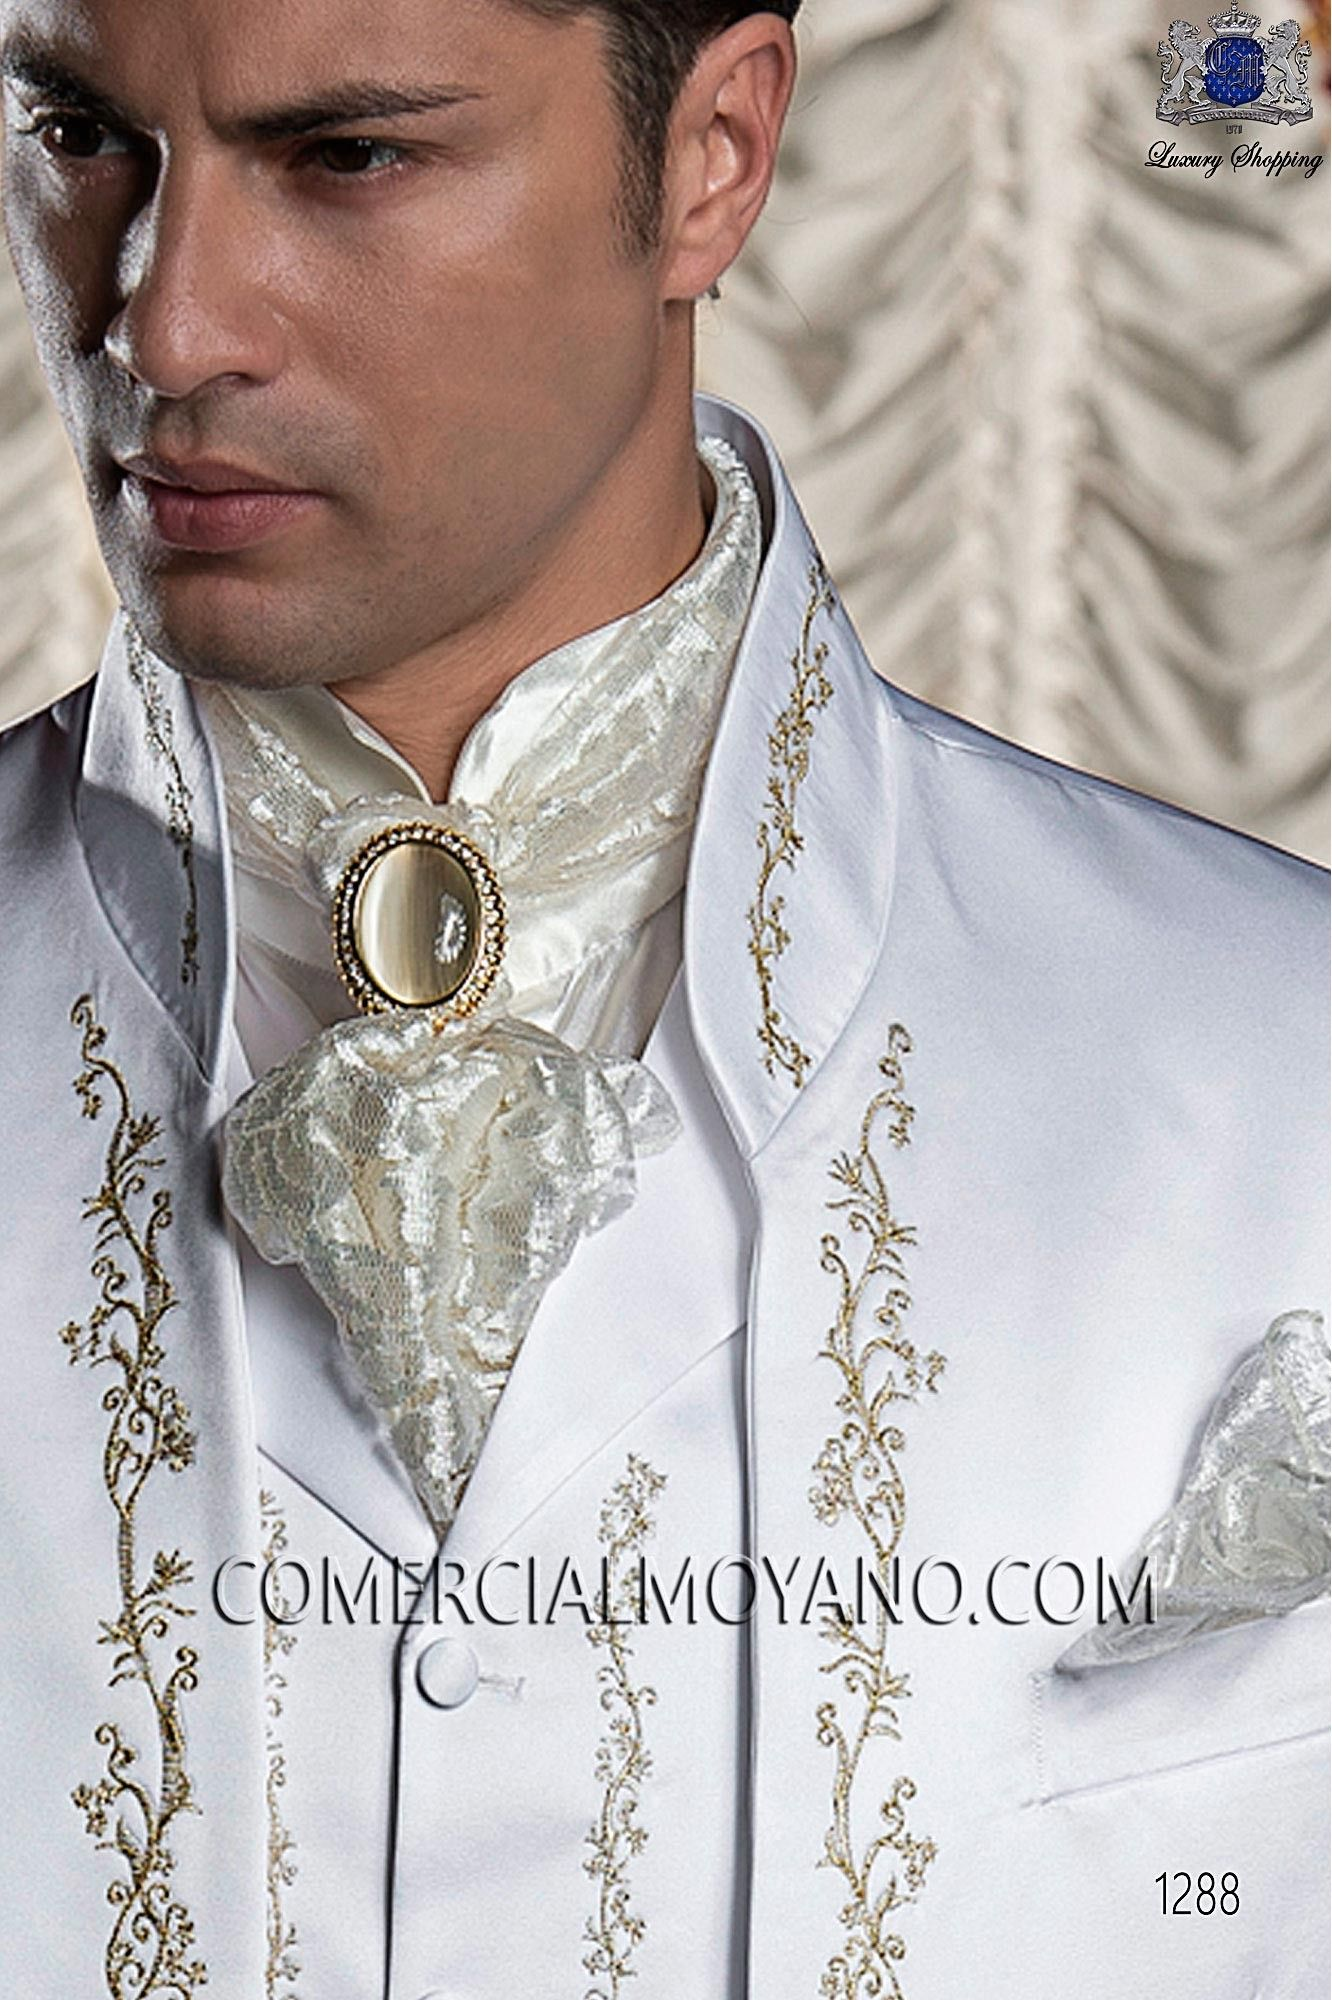 Baroque white men wedding suit! | Favorite Places & Spaces ...